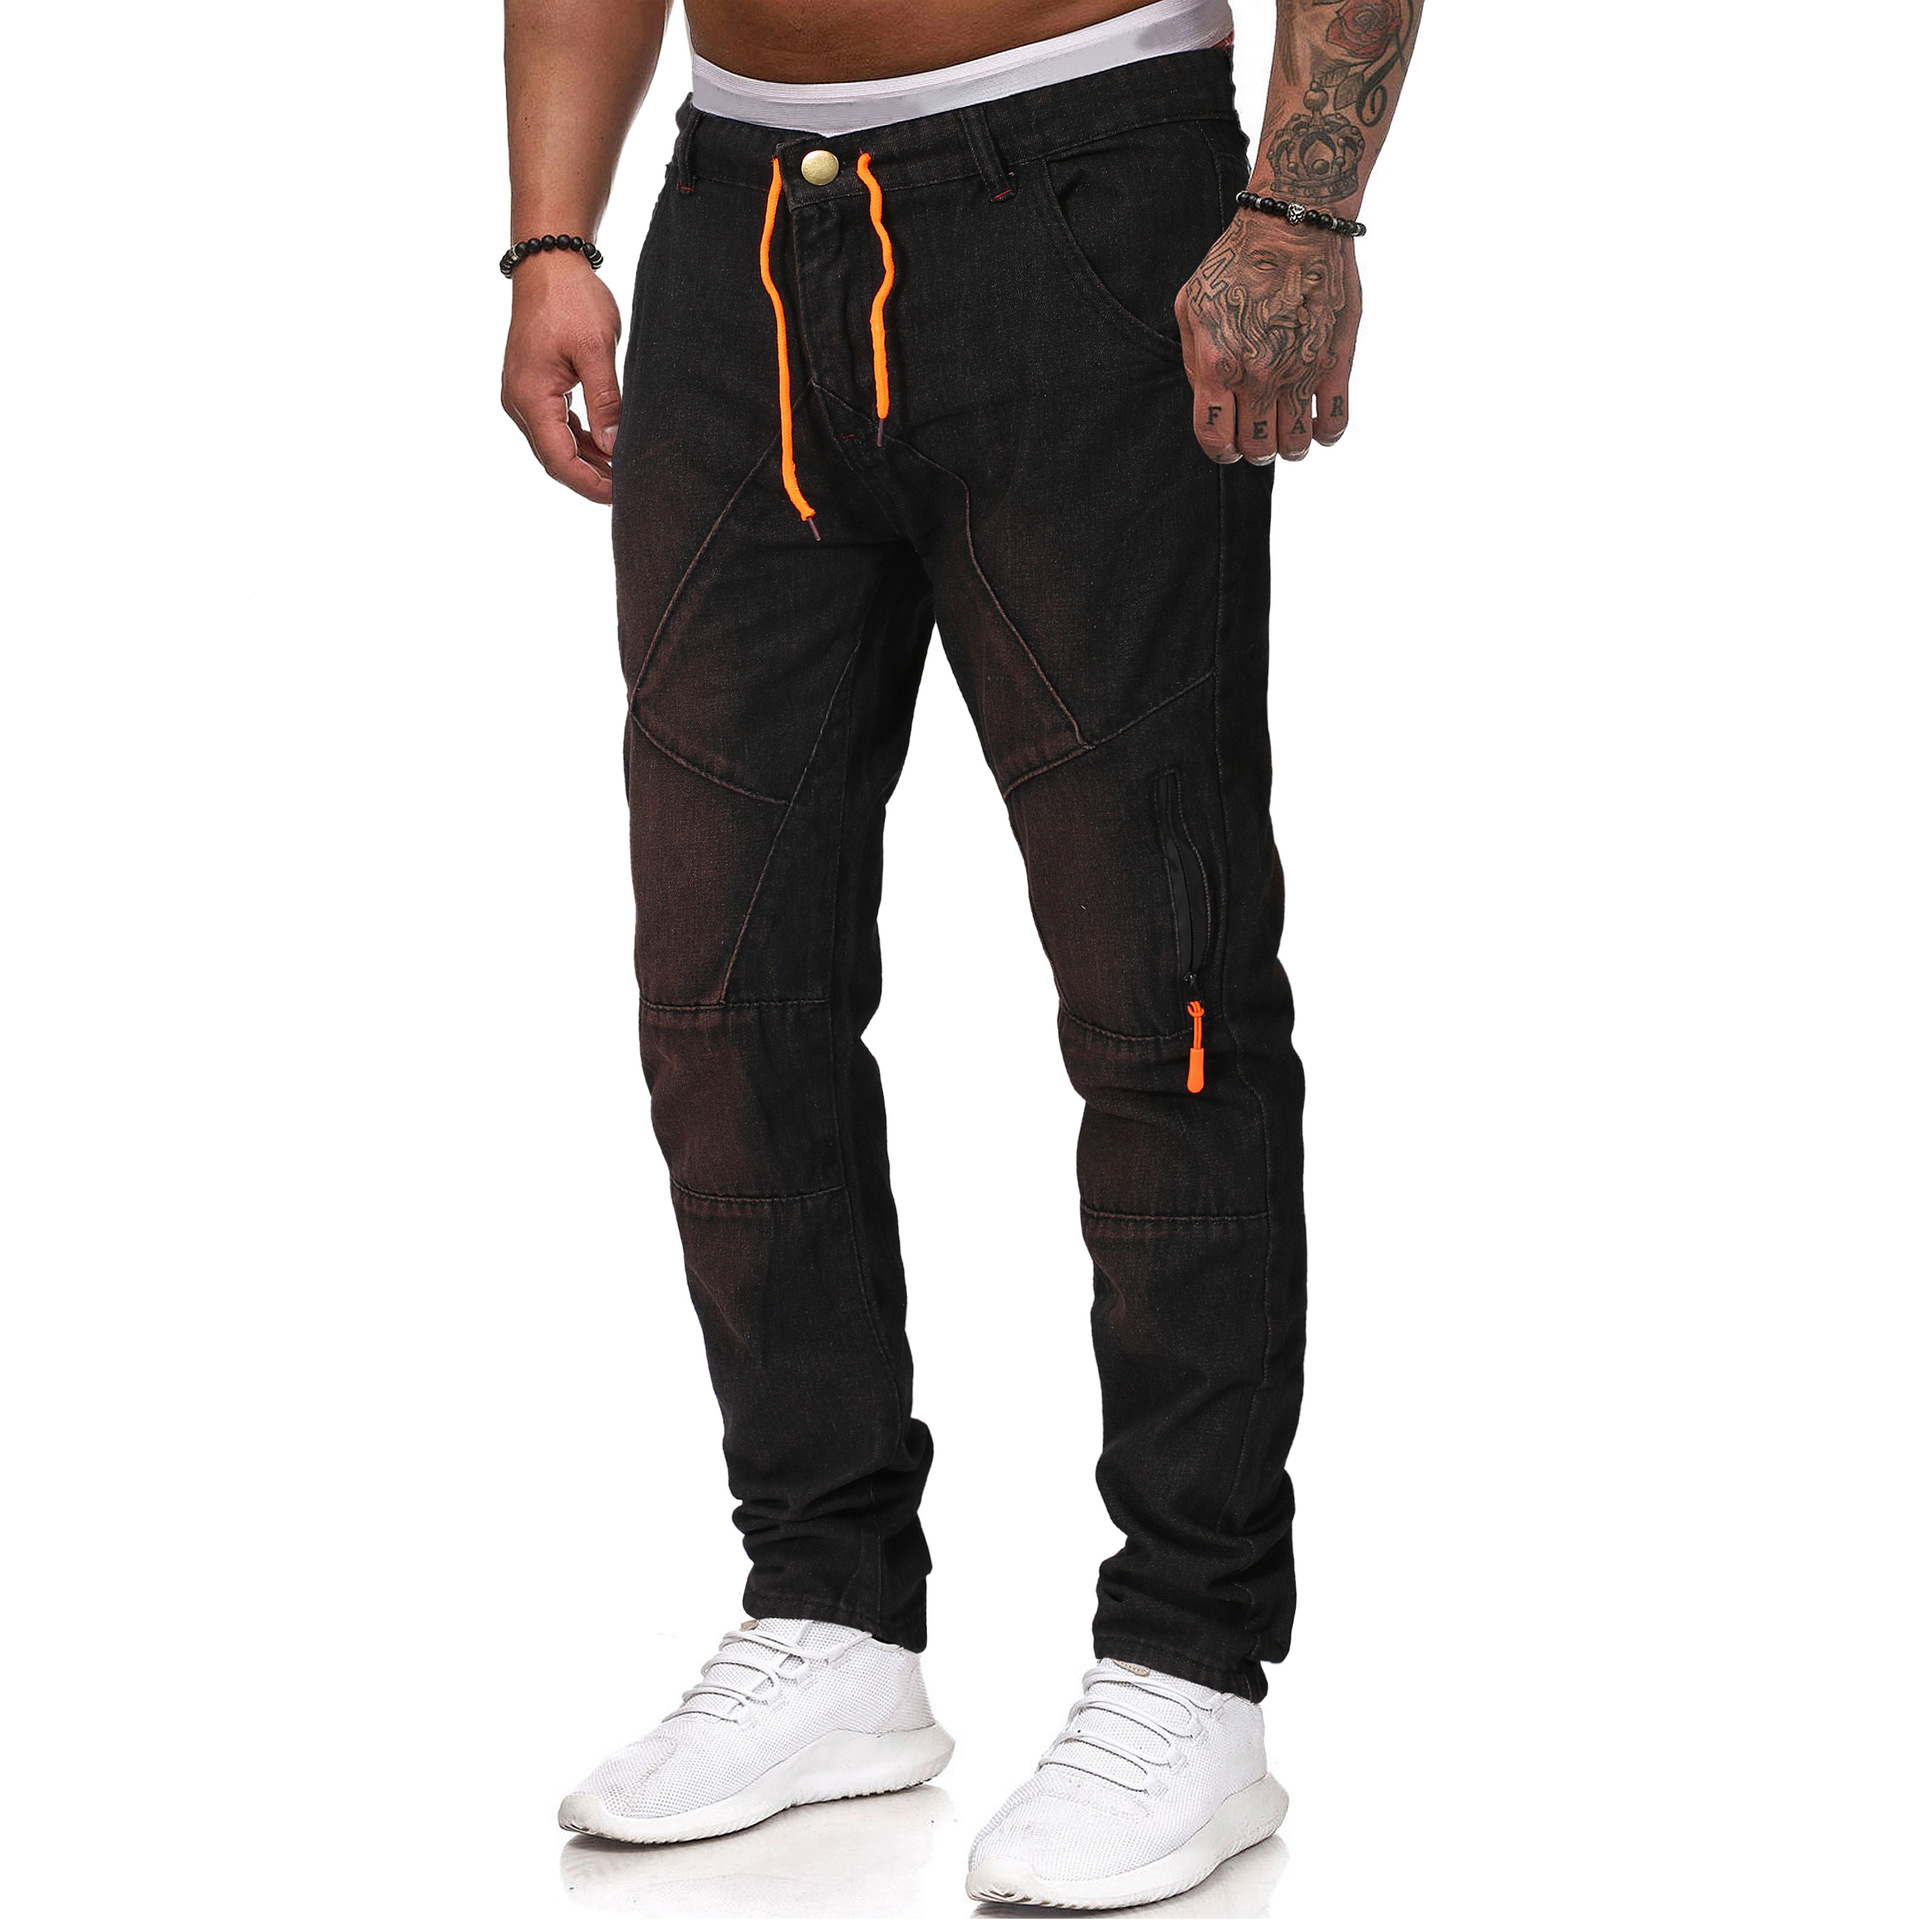 2019 Summer New Style Men's Versitile Fashion Jeans Casual Washing Retro Drawstring Slim Fit Trousers